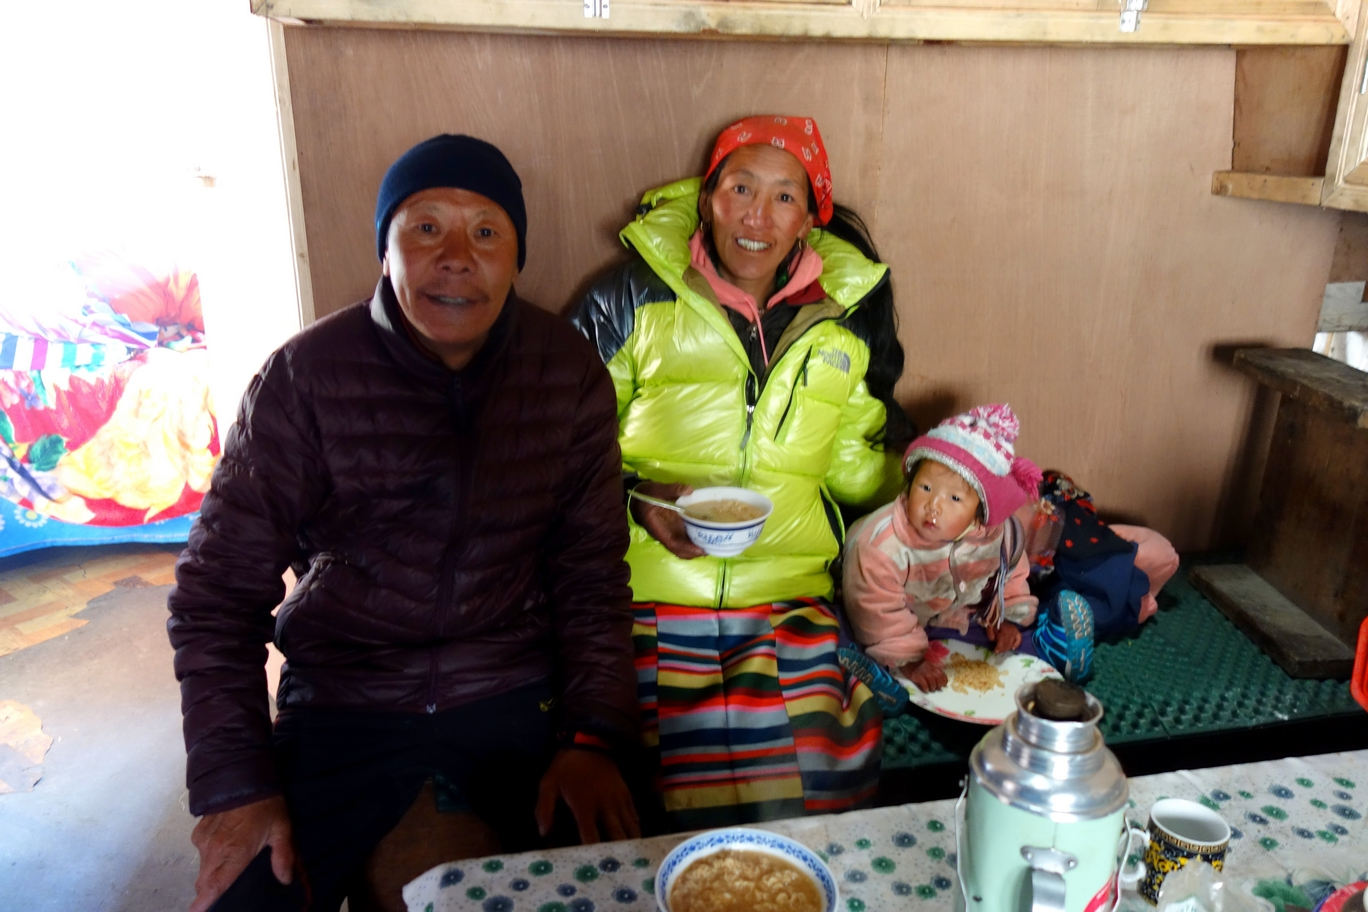 Sherpa family, owners of the Marathon Runner Hotel in Thame